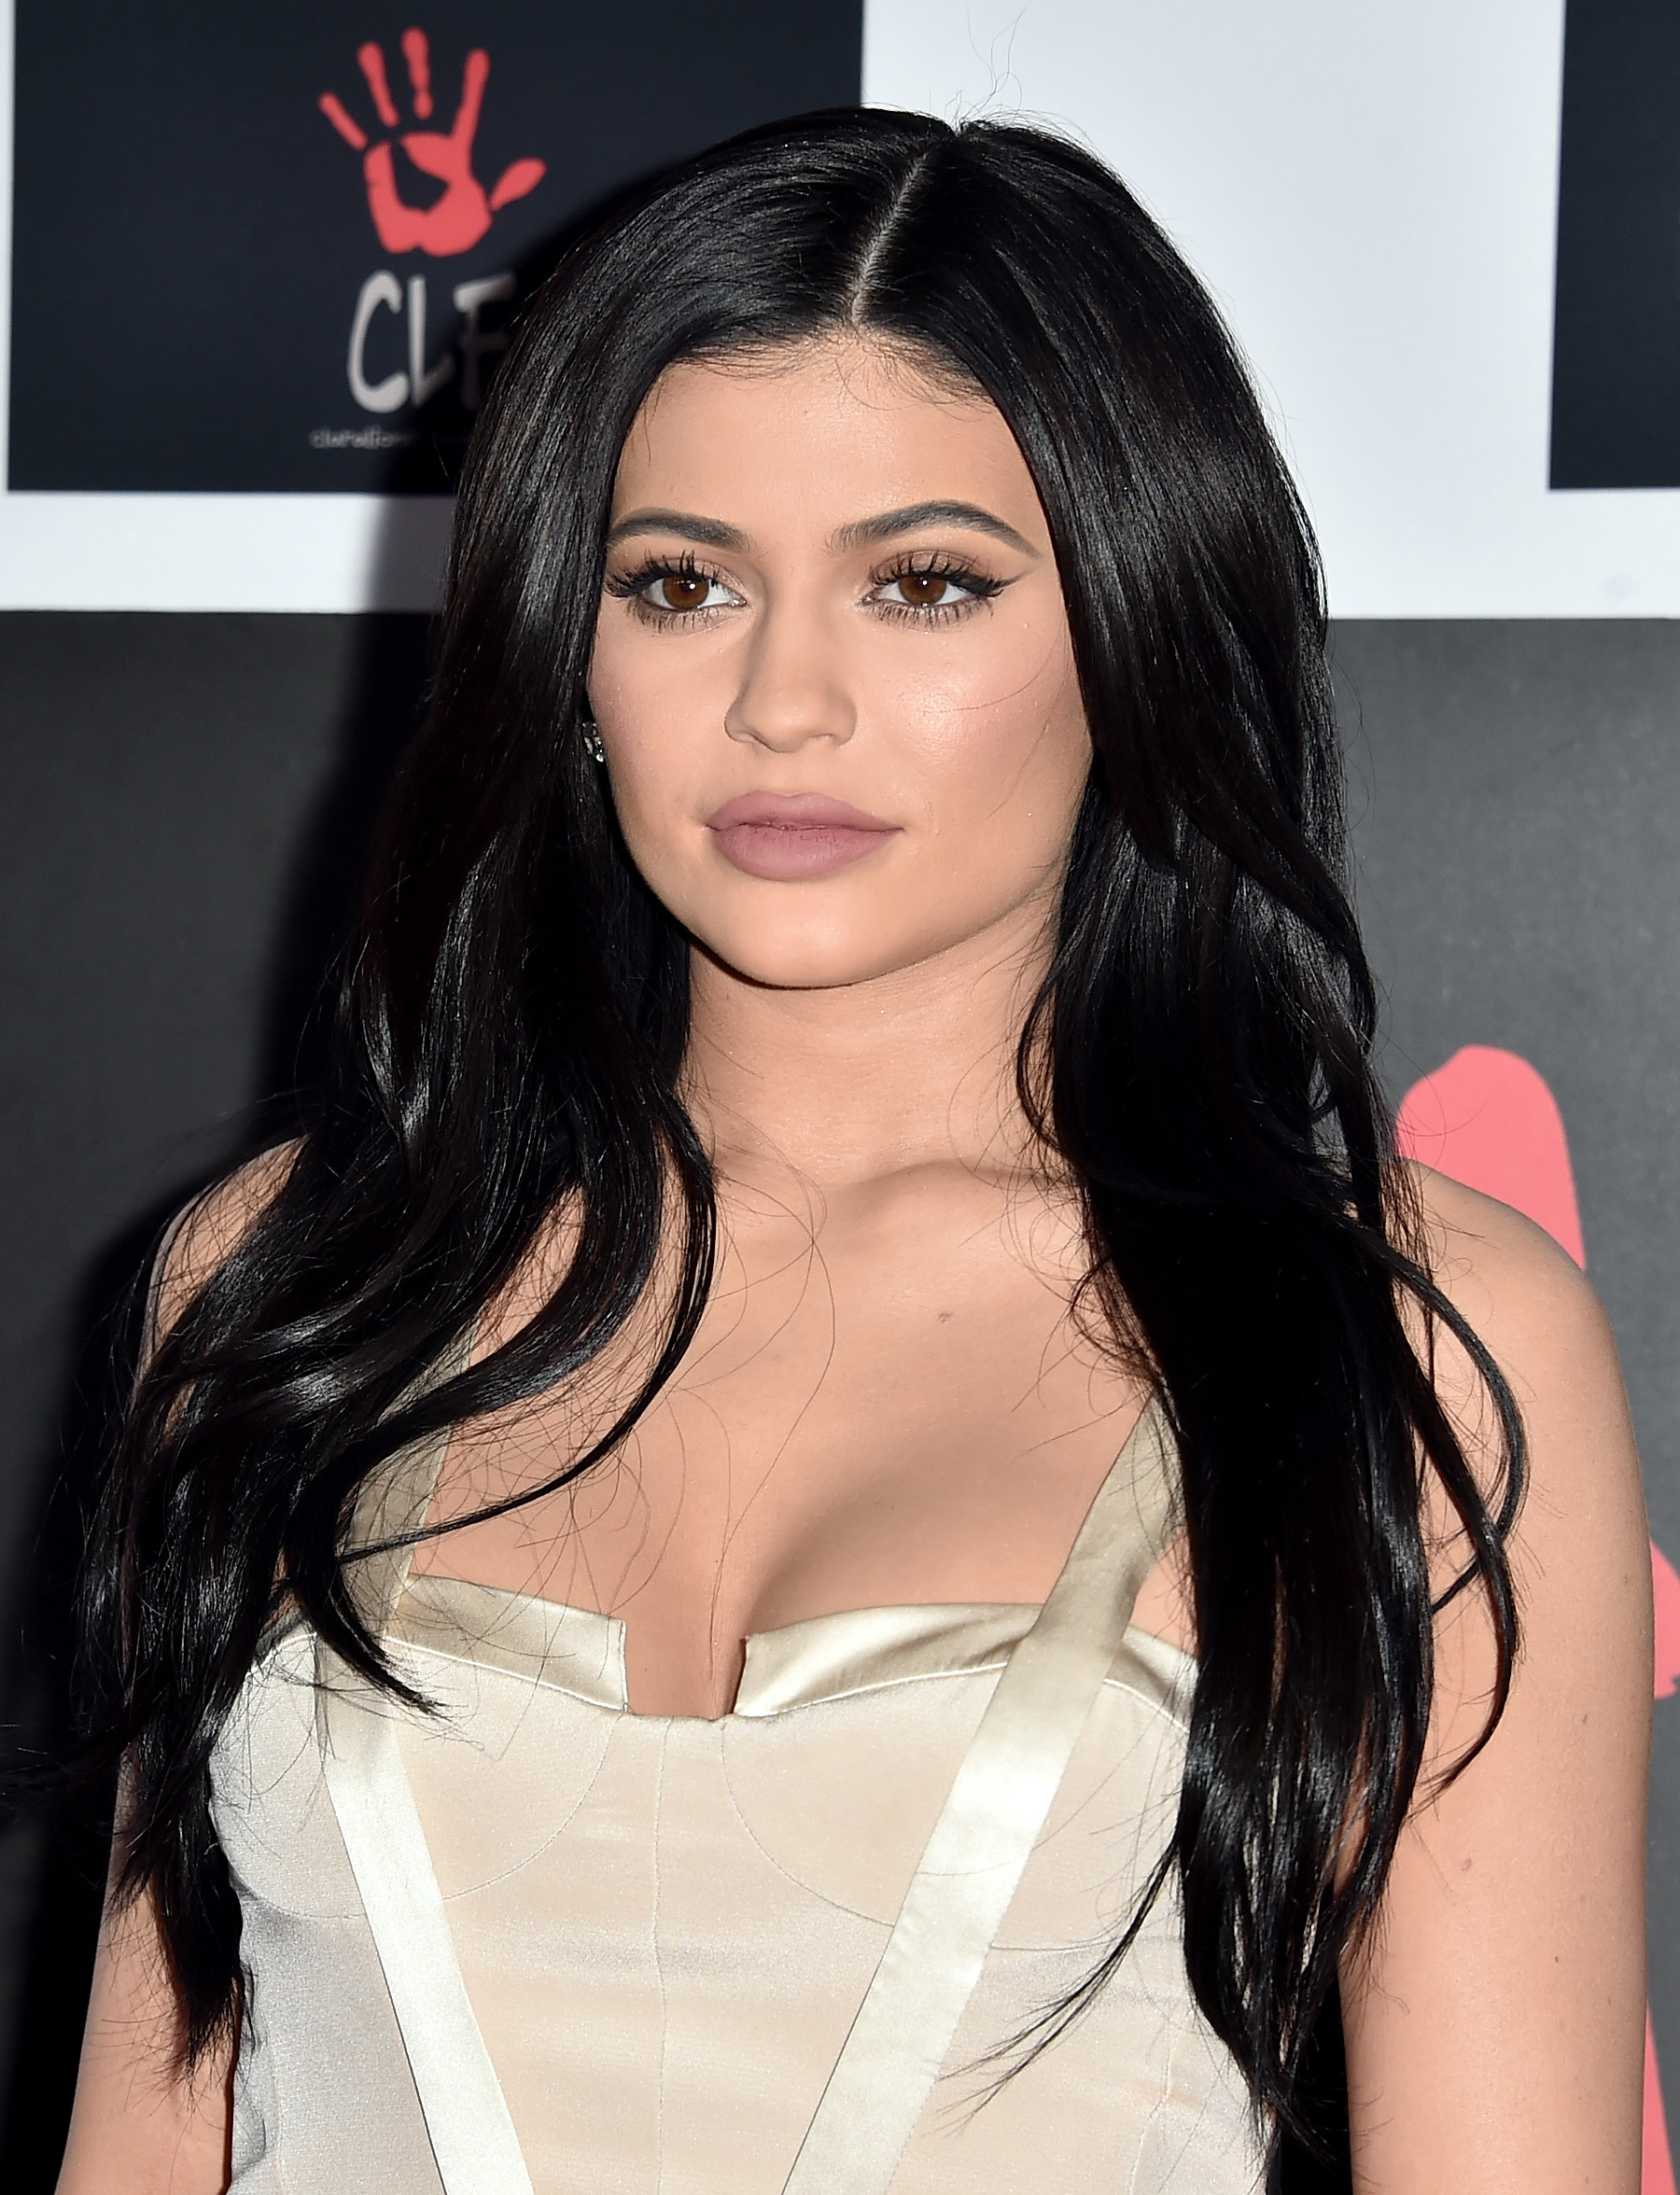 Kylie Jenner Goes Bridal Chic On Red Carpet (PHOTOS